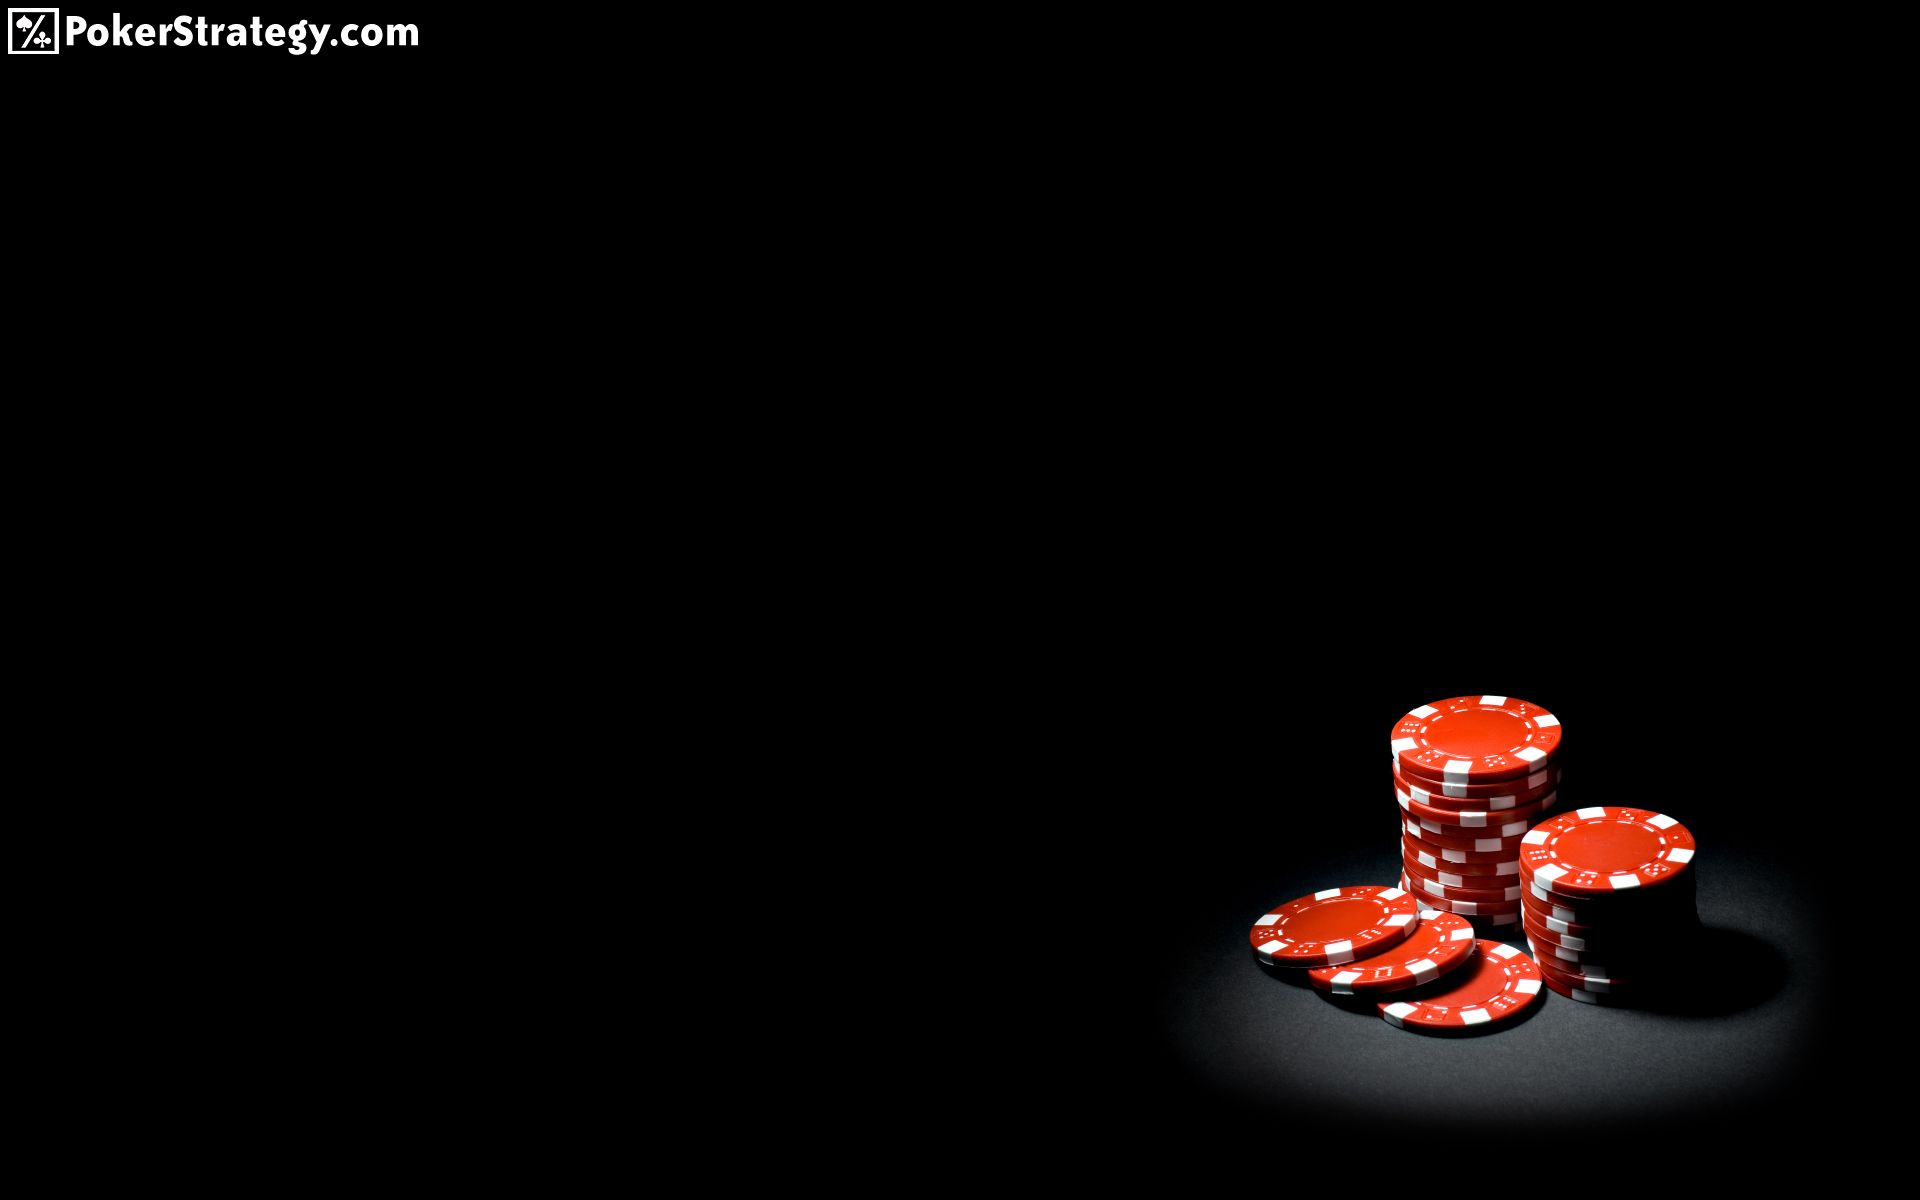 Get Higher Casino Outcomes By Following 3 Simple Steps